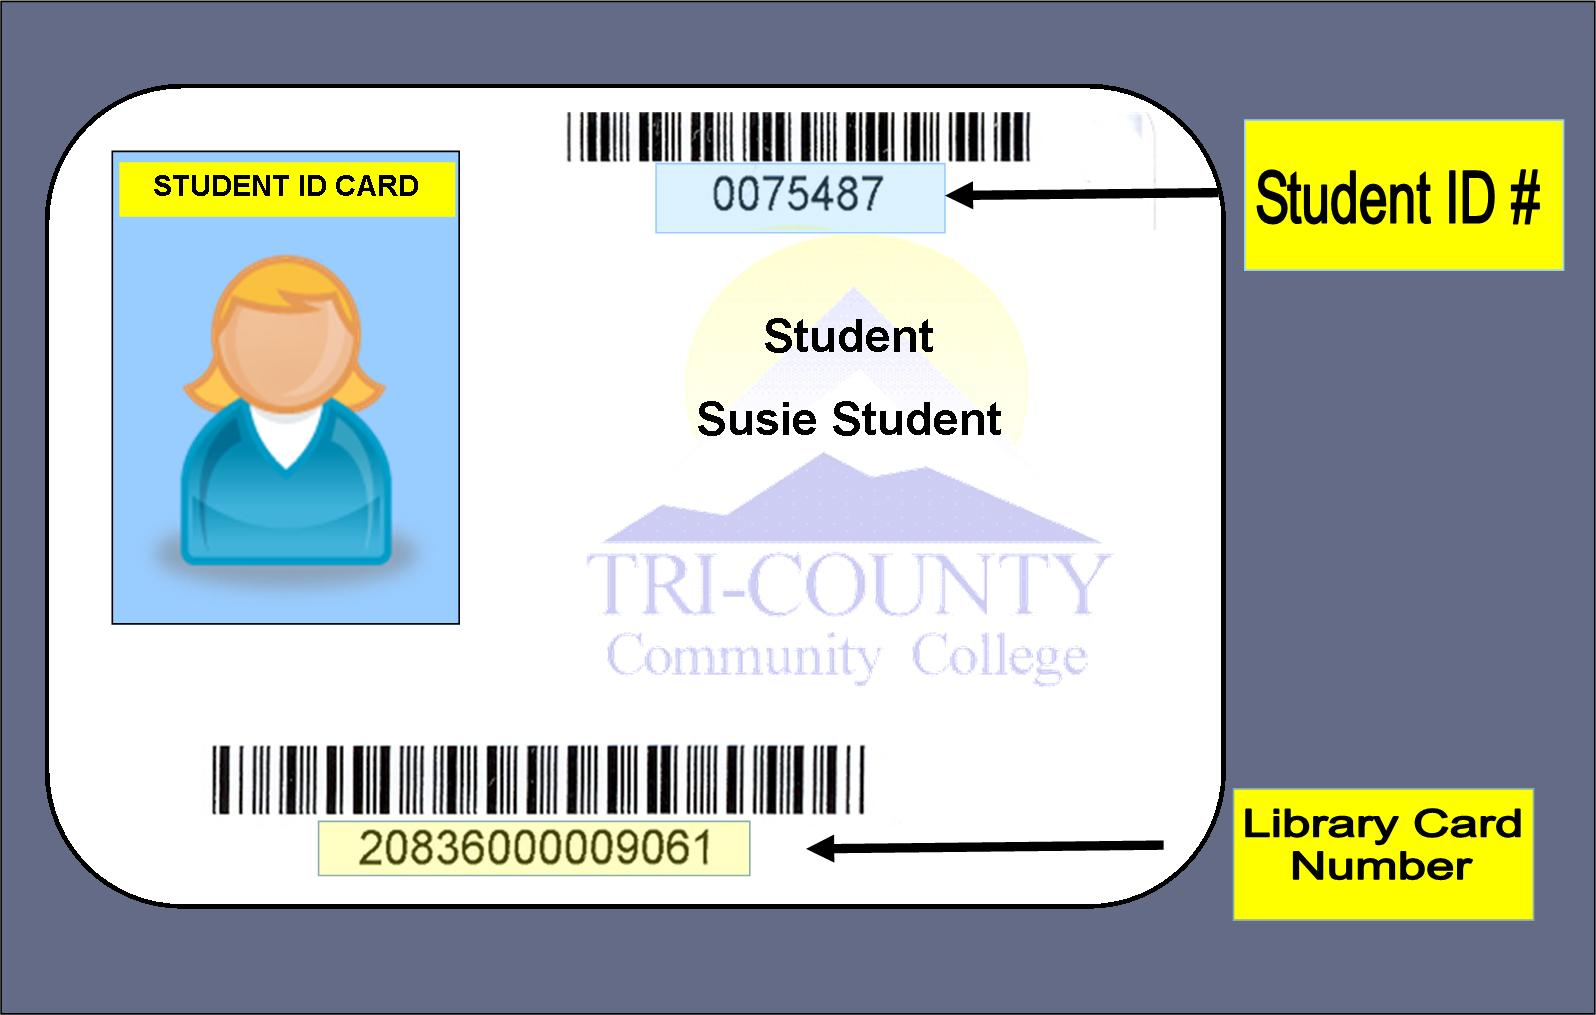 Student ID Number